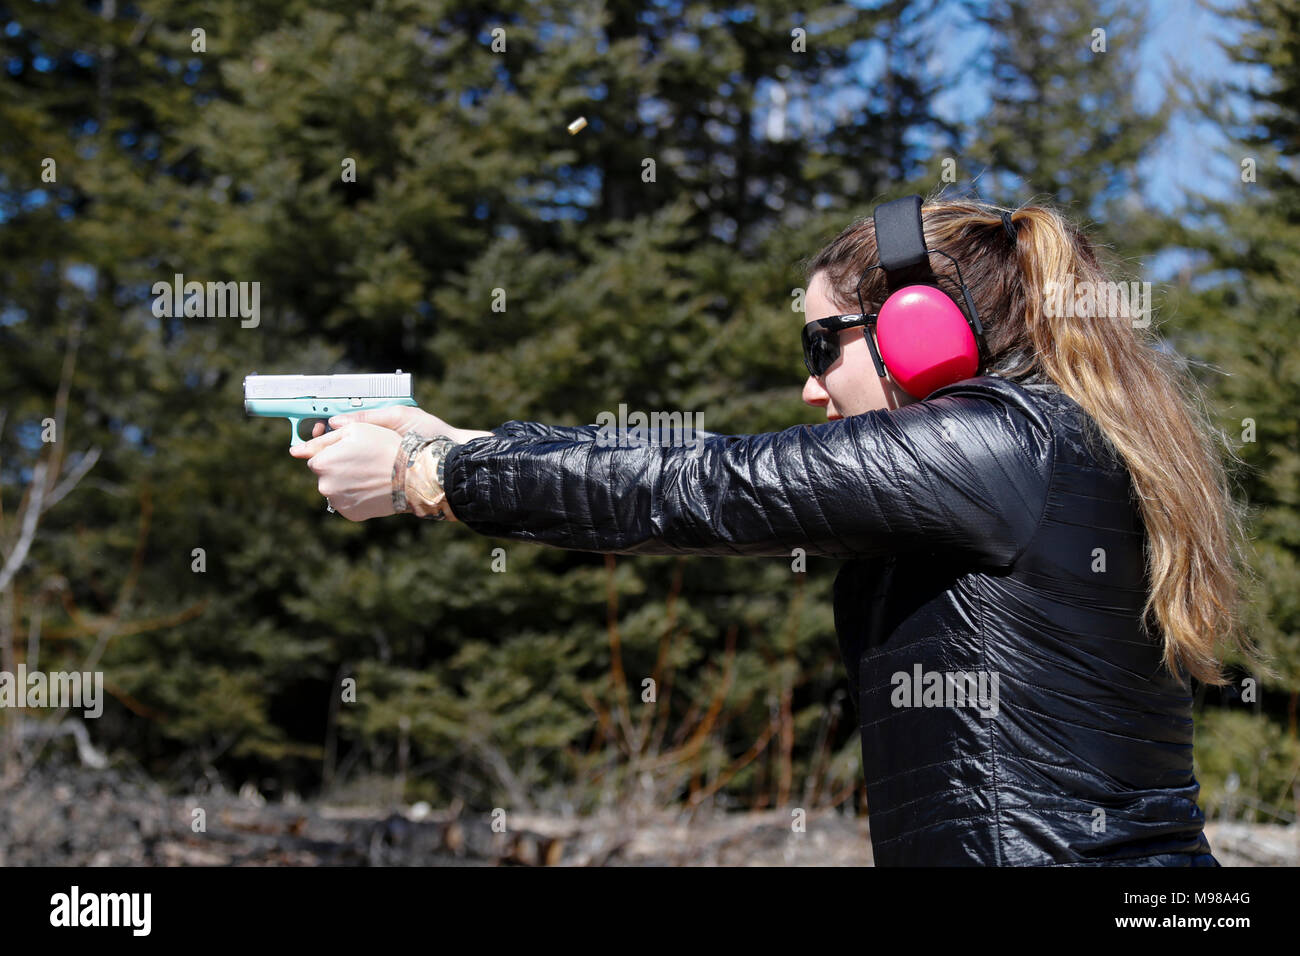 Woman shooting a handgun and the ejected shell is in the air. - Stock Image